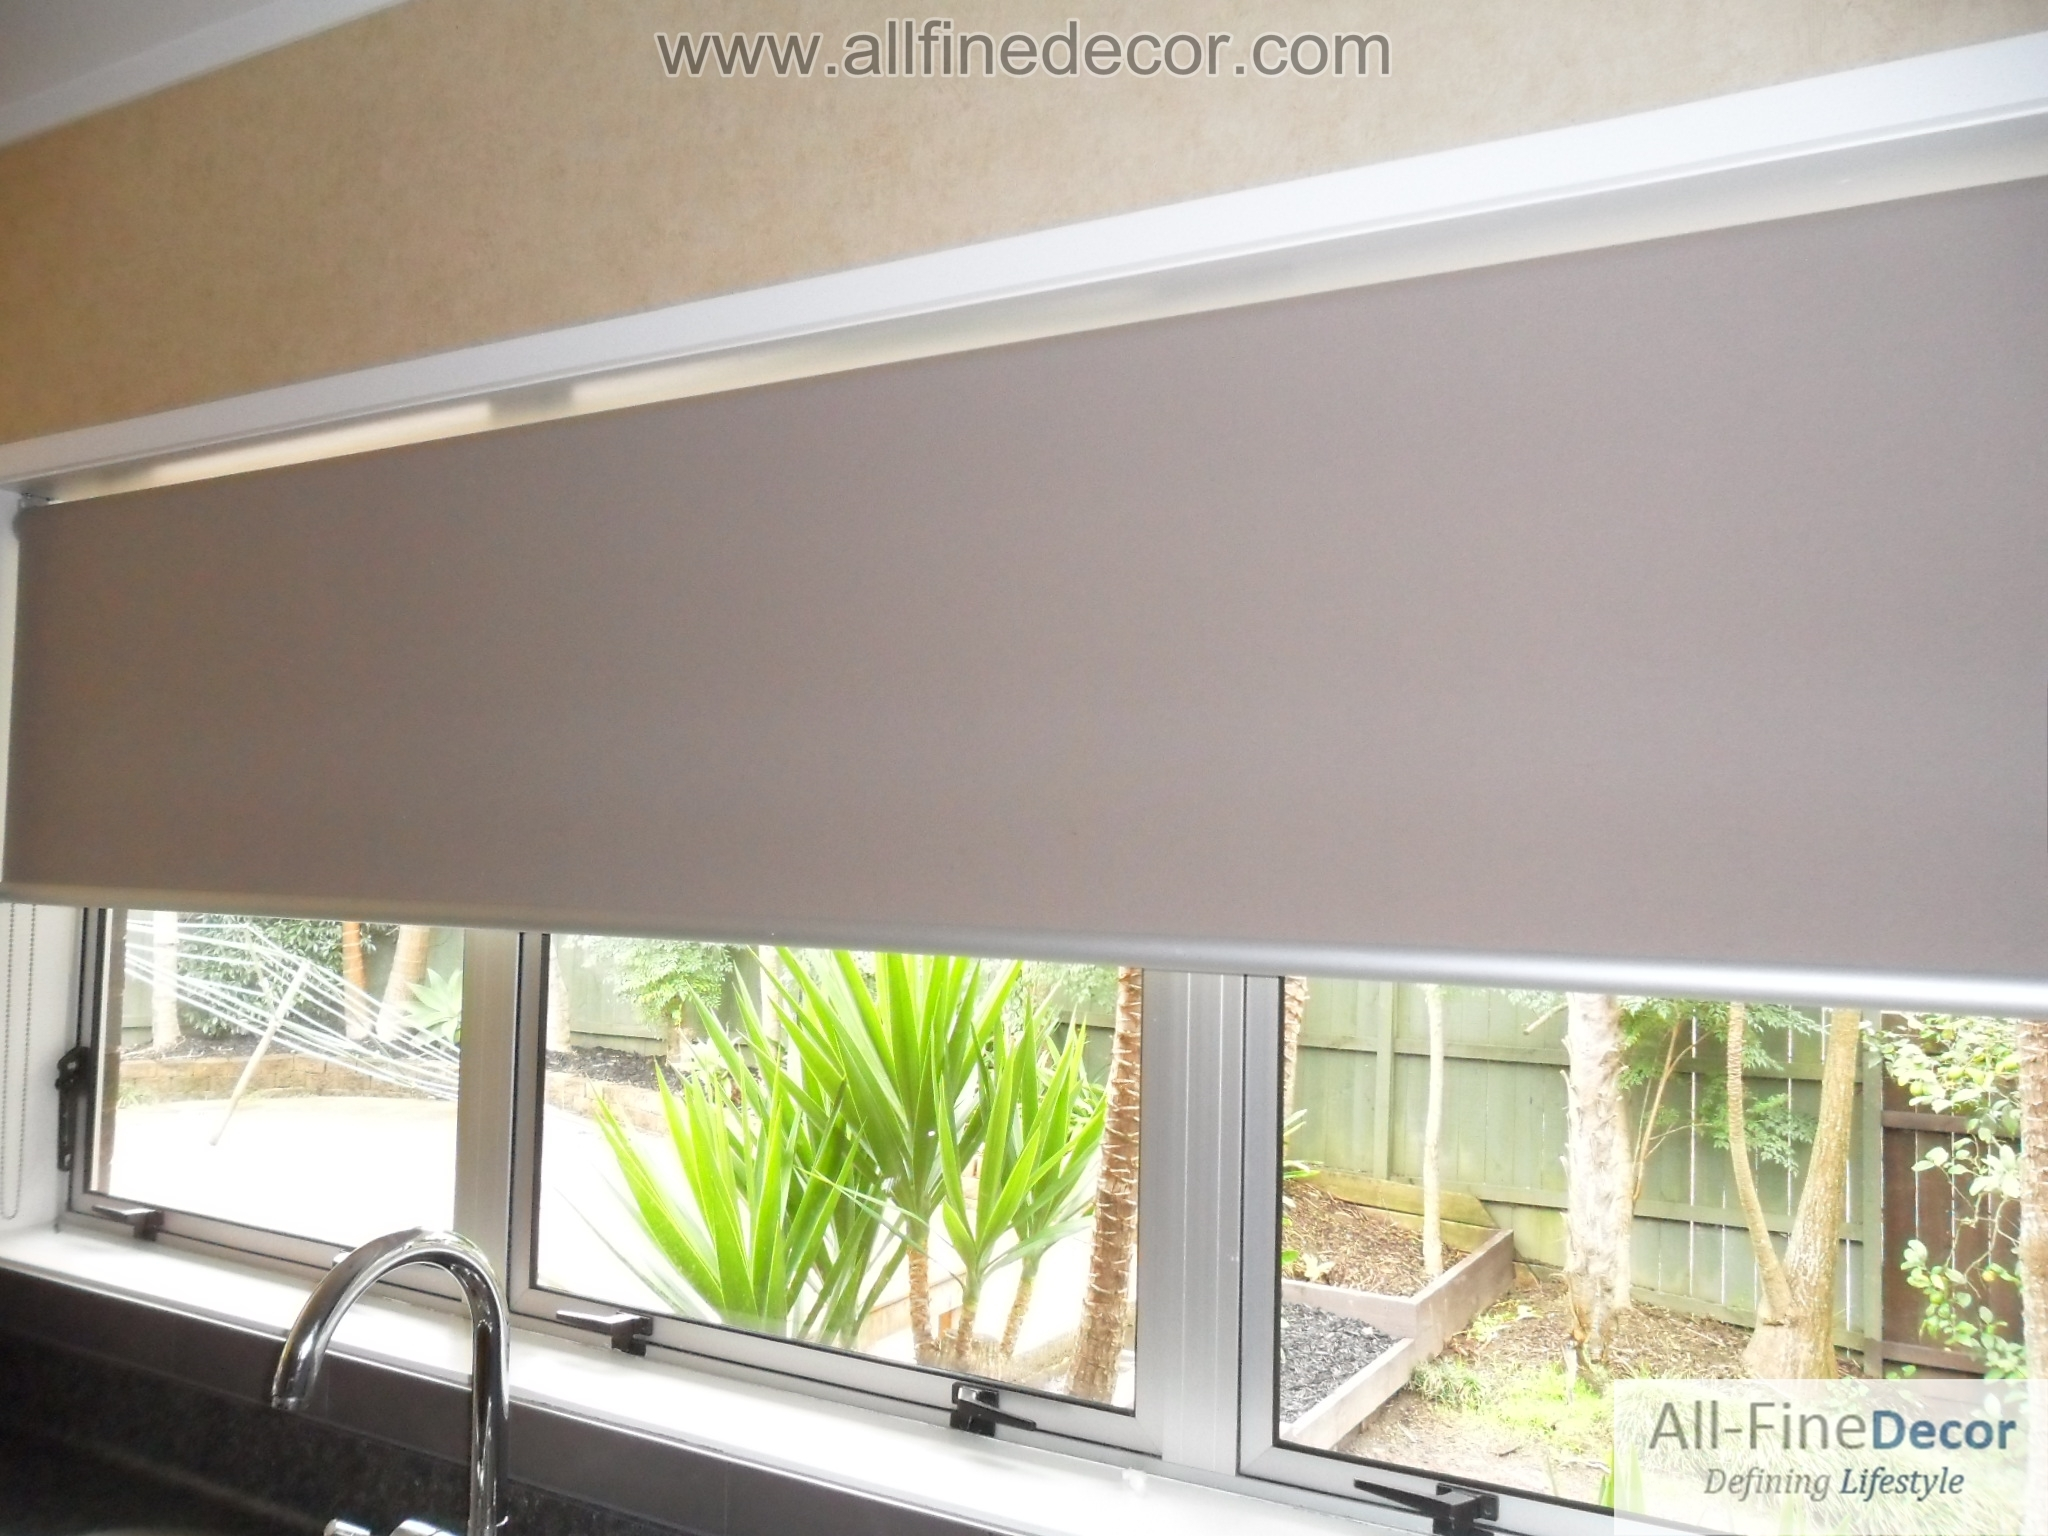 Roller Blinds Plain Throughout Plain Roller Blinds (Image 11 of 15)